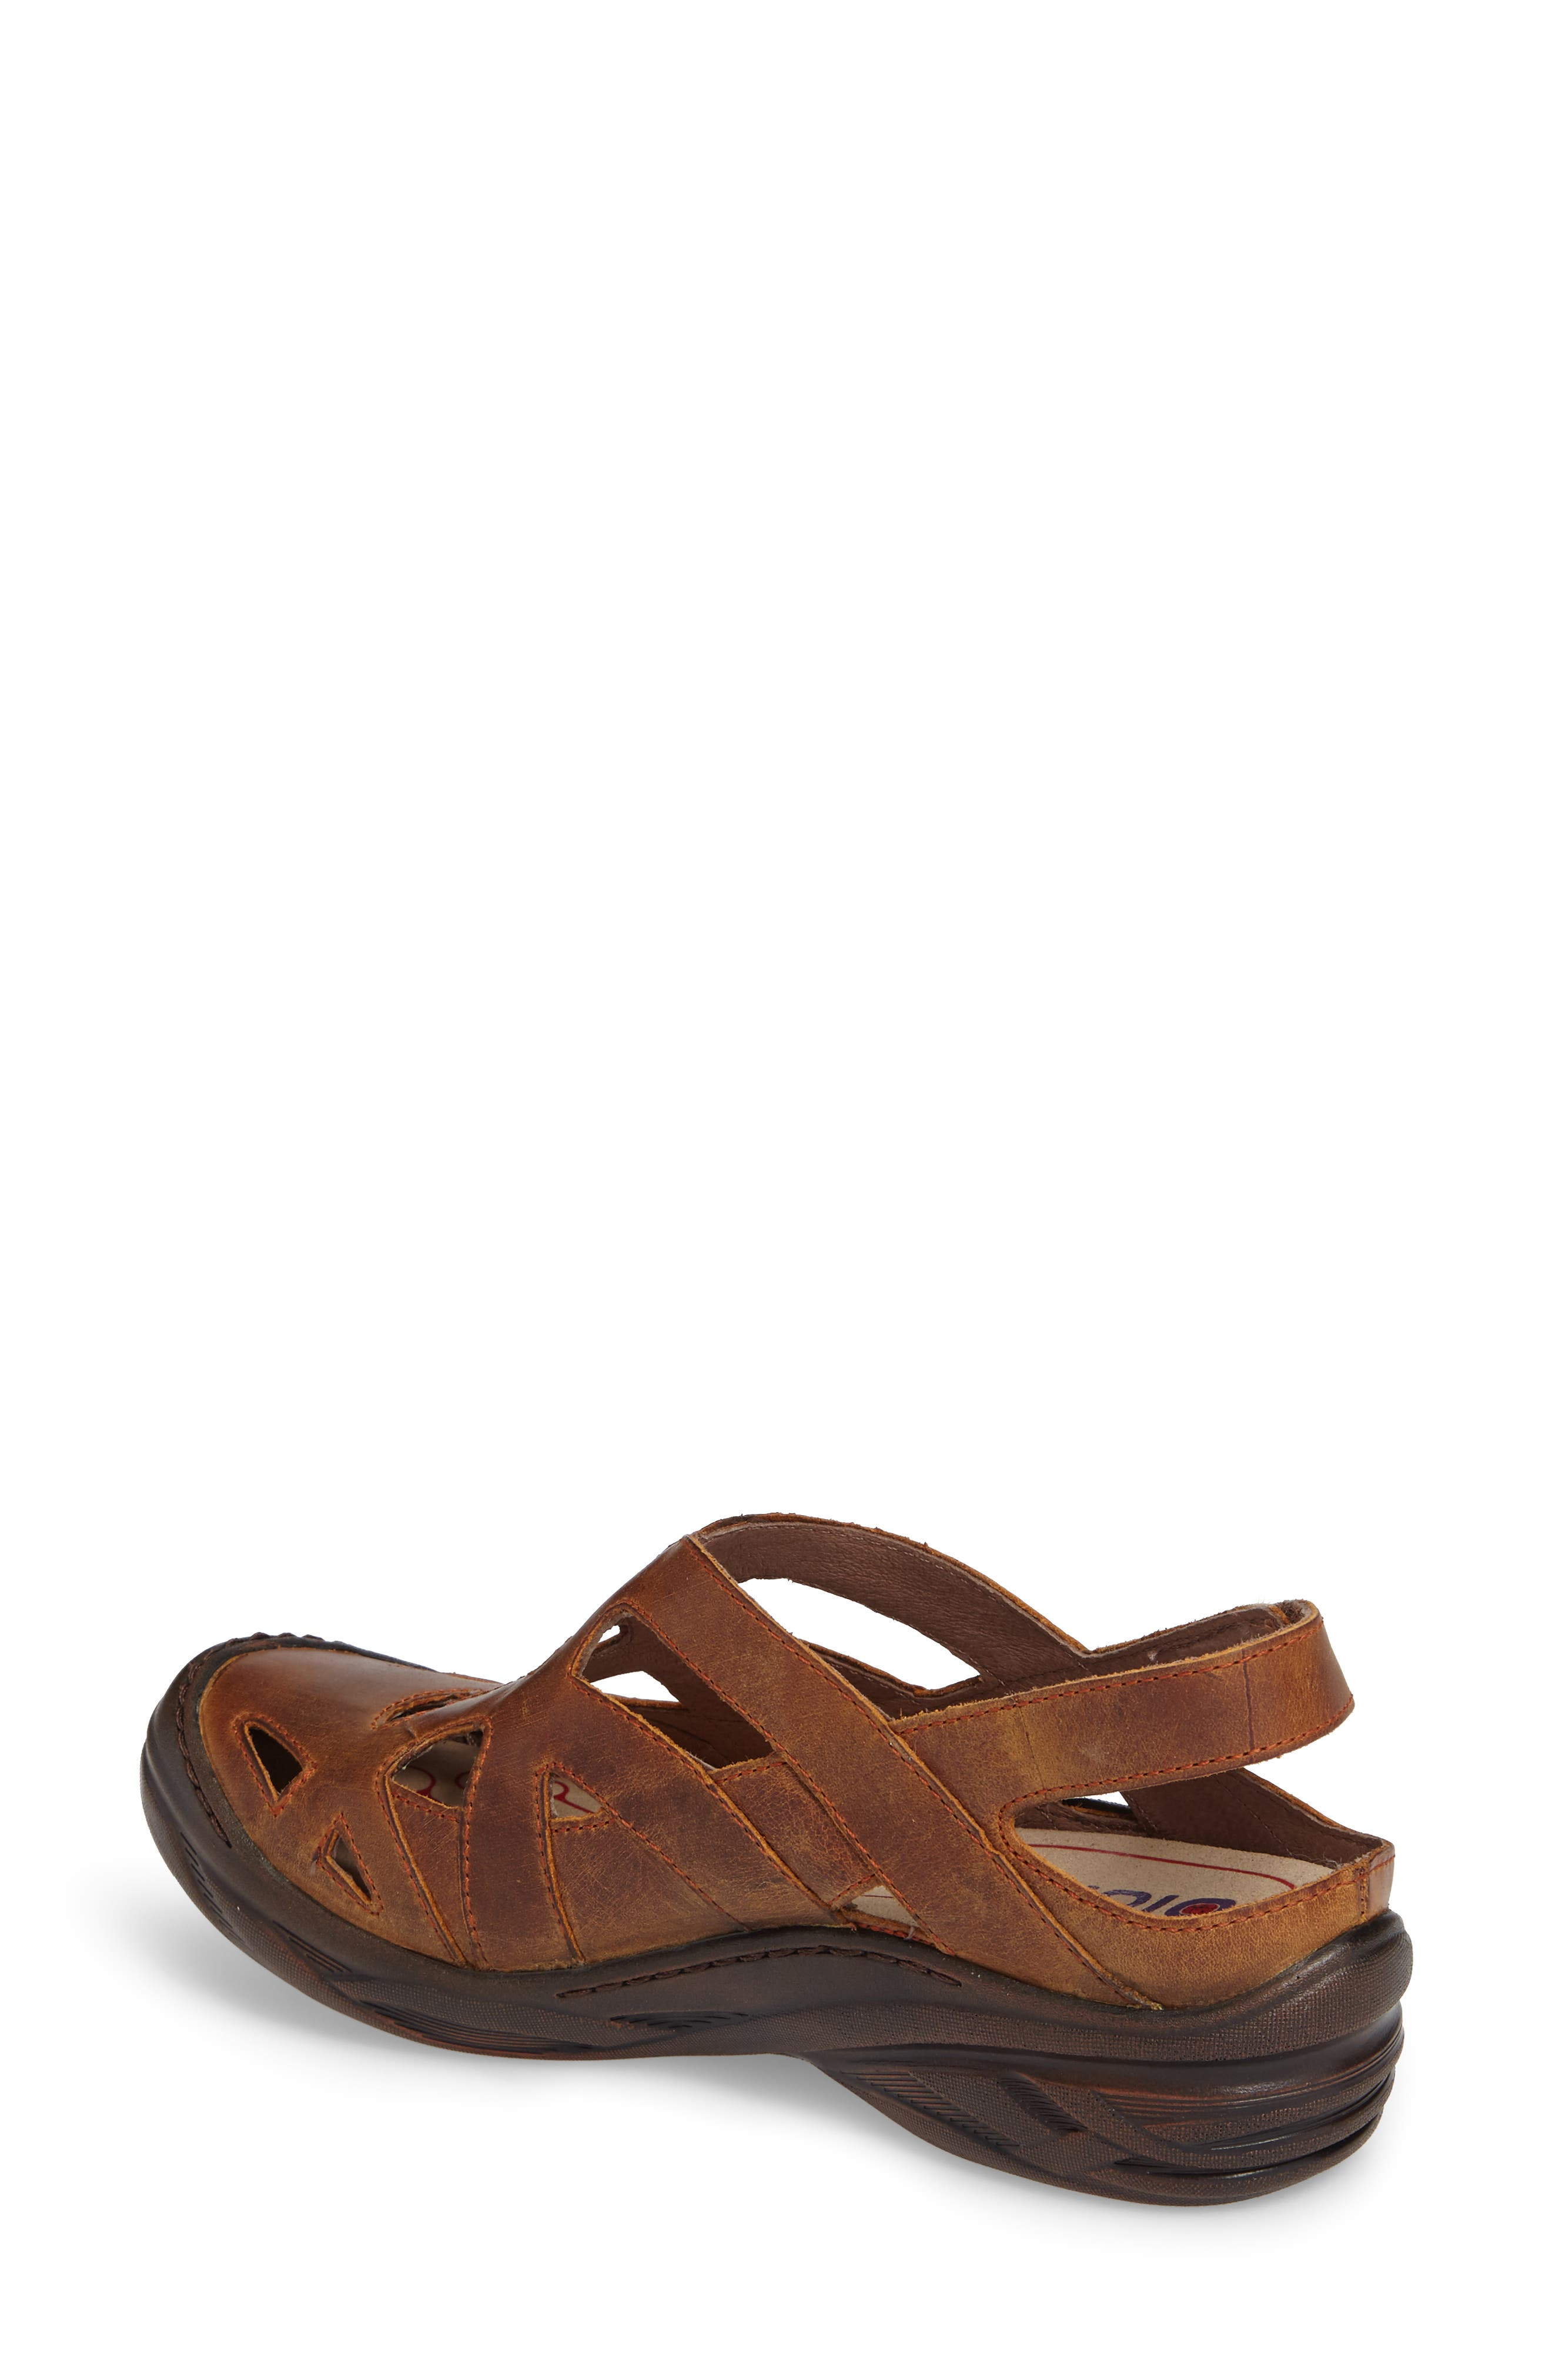 BIONICA,                             Maclean Sandal,                             Alternate thumbnail 2, color,                             ALMOND TAN LEATHER